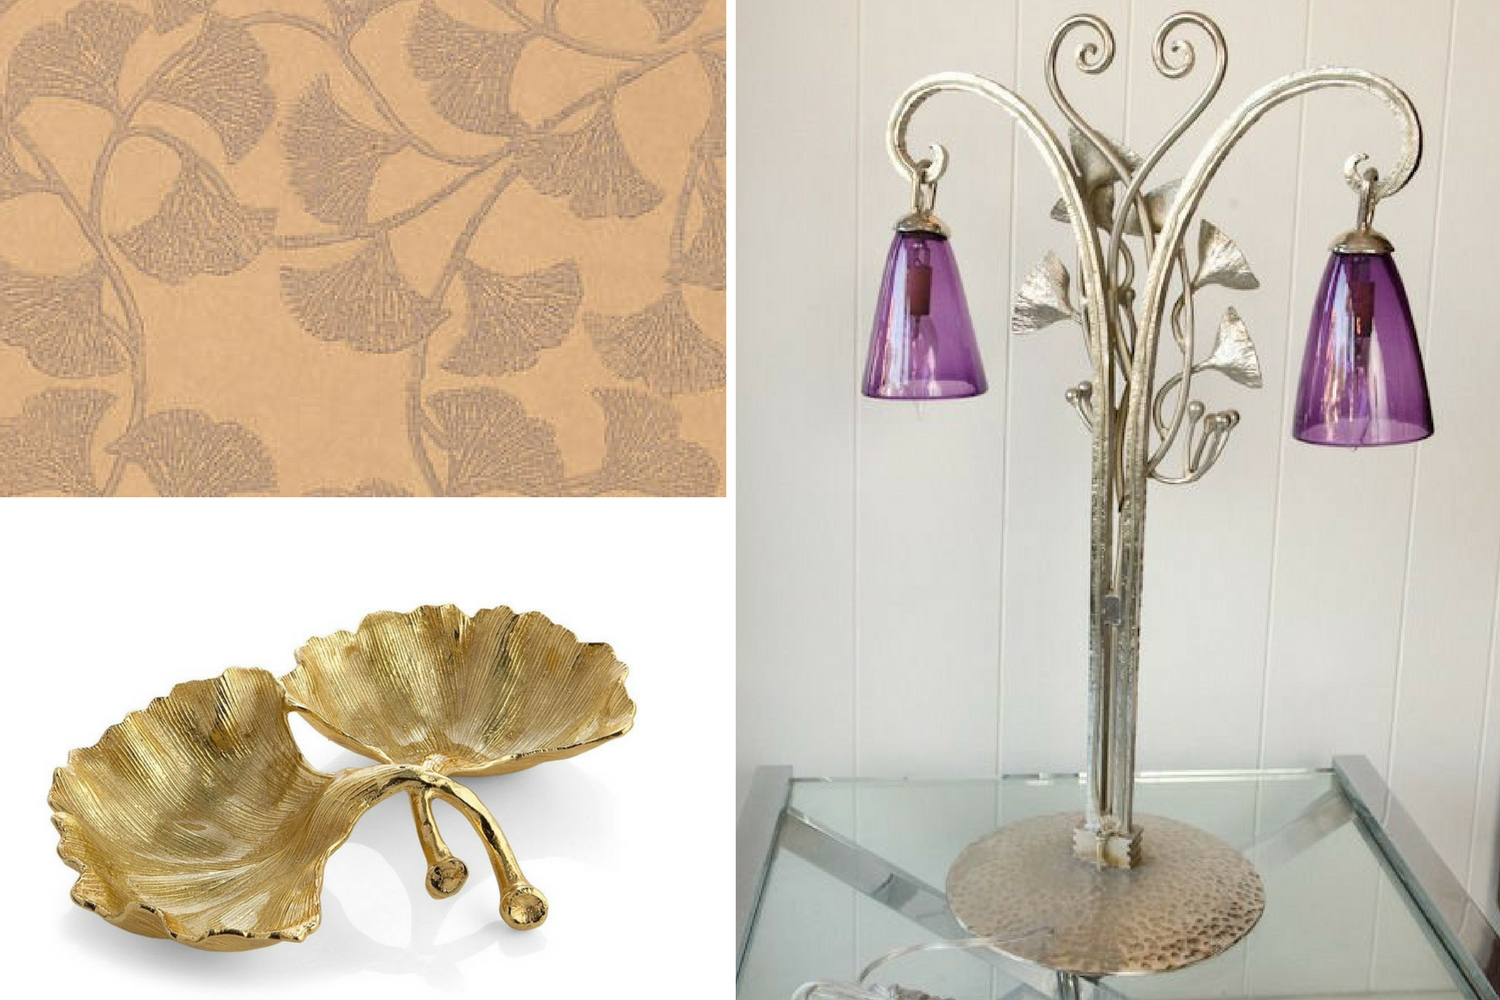 Thibaut wallpaper and art nouveau lamp and Michael Aram dish